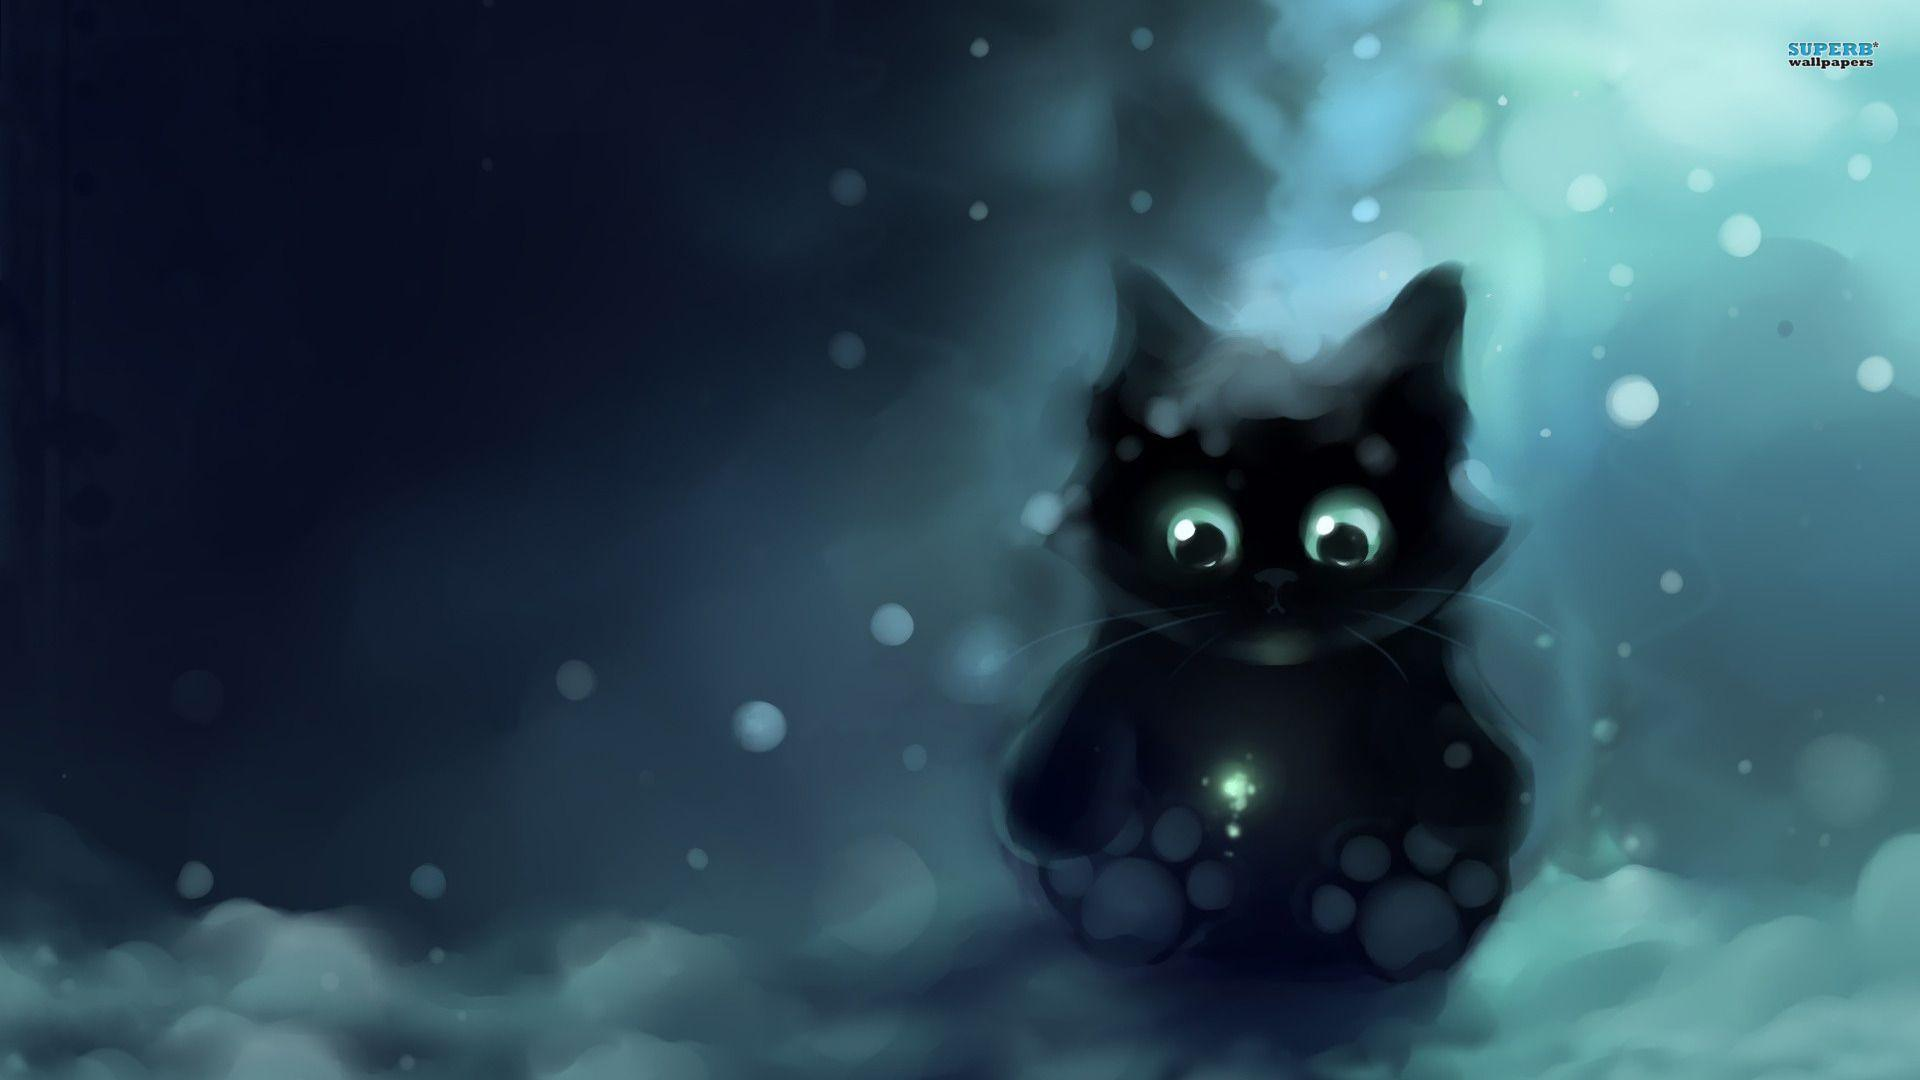 Free Download Cartoon Cat Wallpapers 1920x1080 For Your